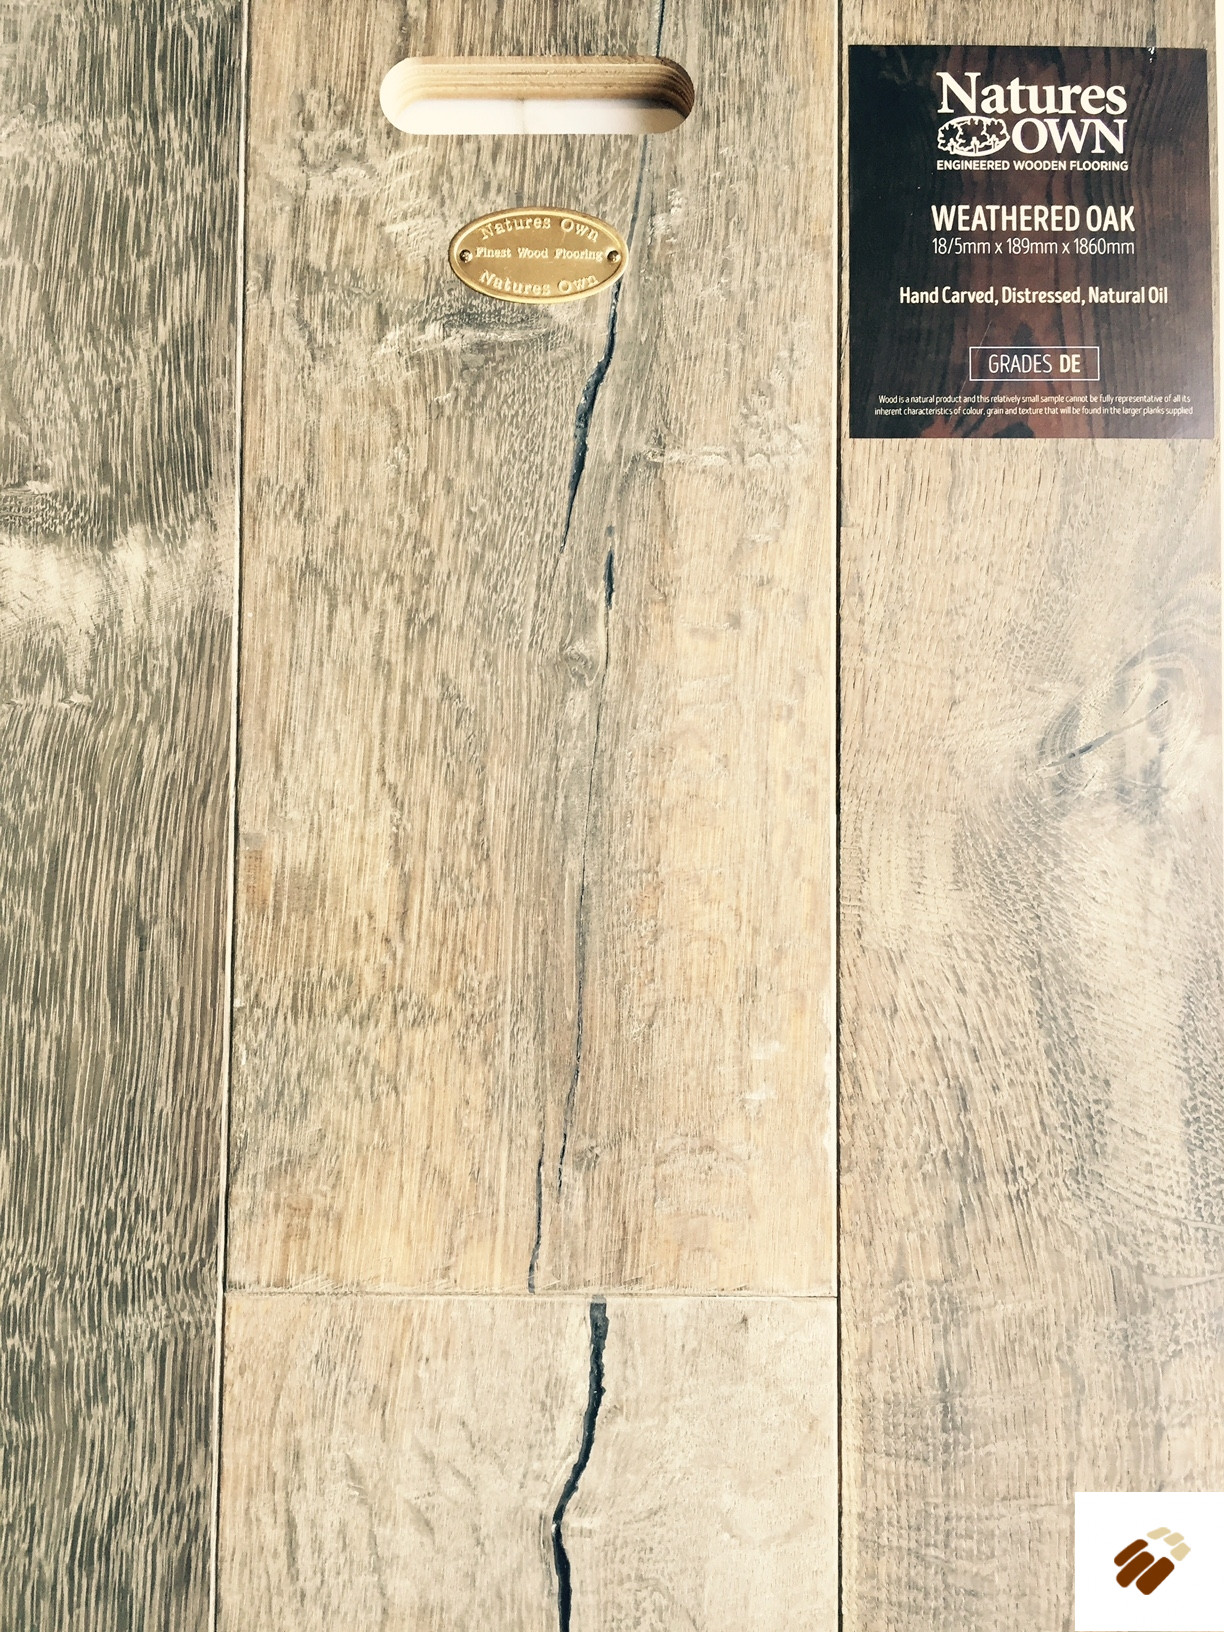 NATURES OWN: Weathered Oak Hand Carved, Distressed & Natural Oiled (18/5 x 189mm)-0